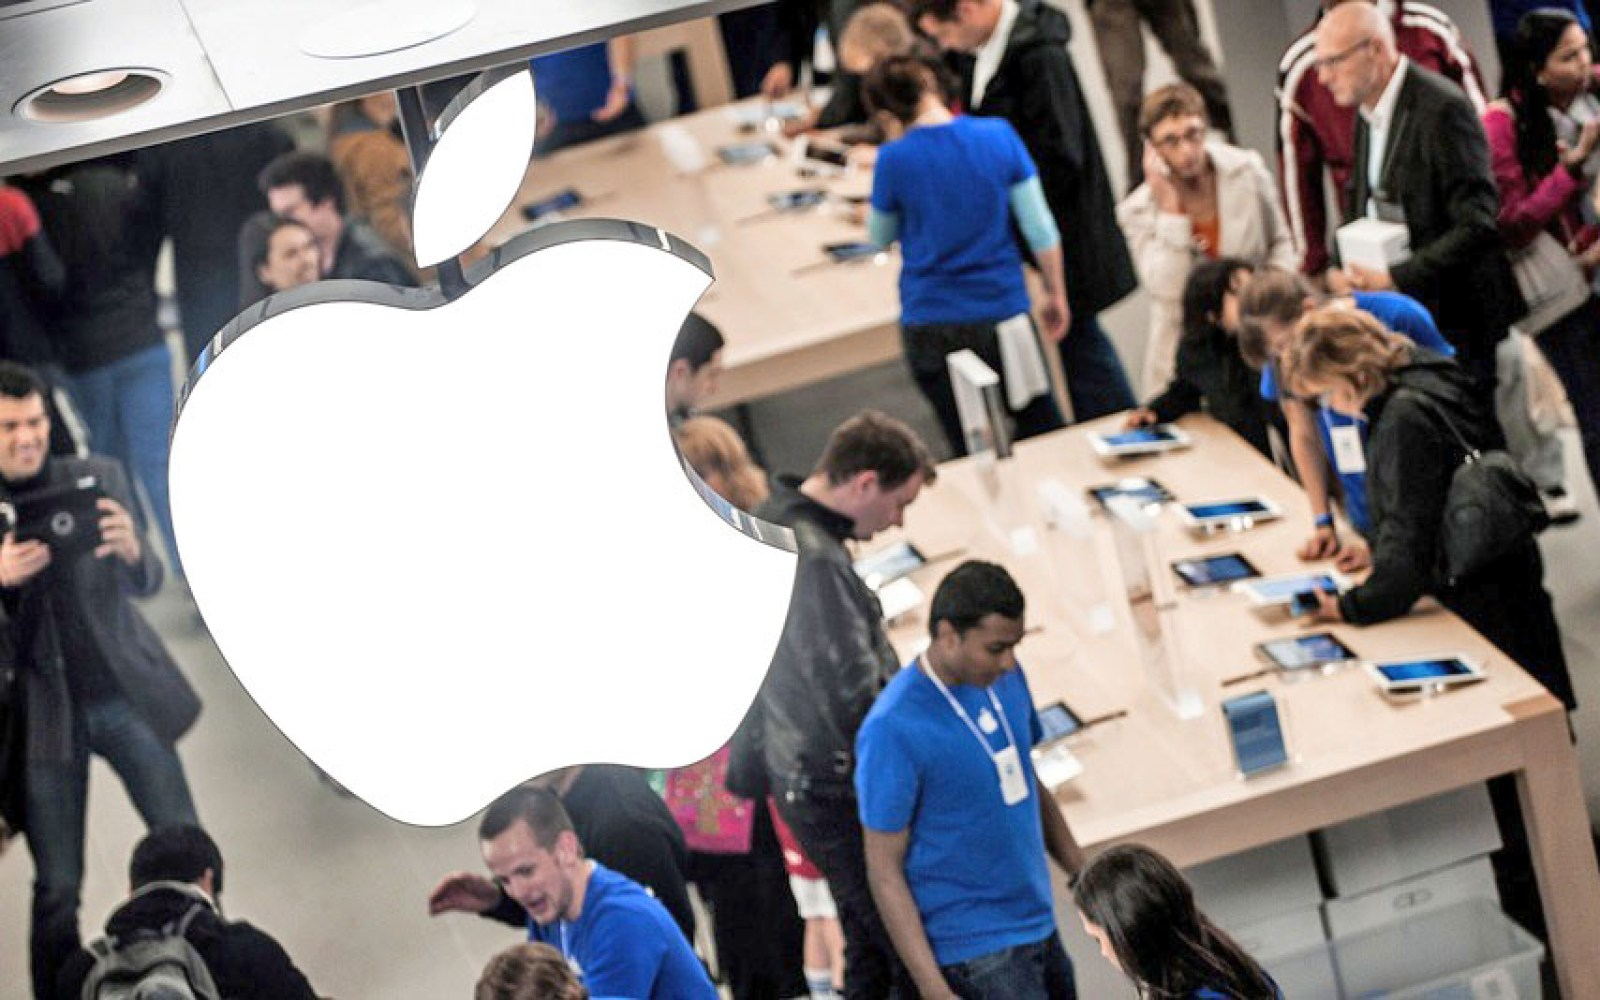 Opinion: Why the upgrade cycle means the 'Apple tax' is lower than it seems